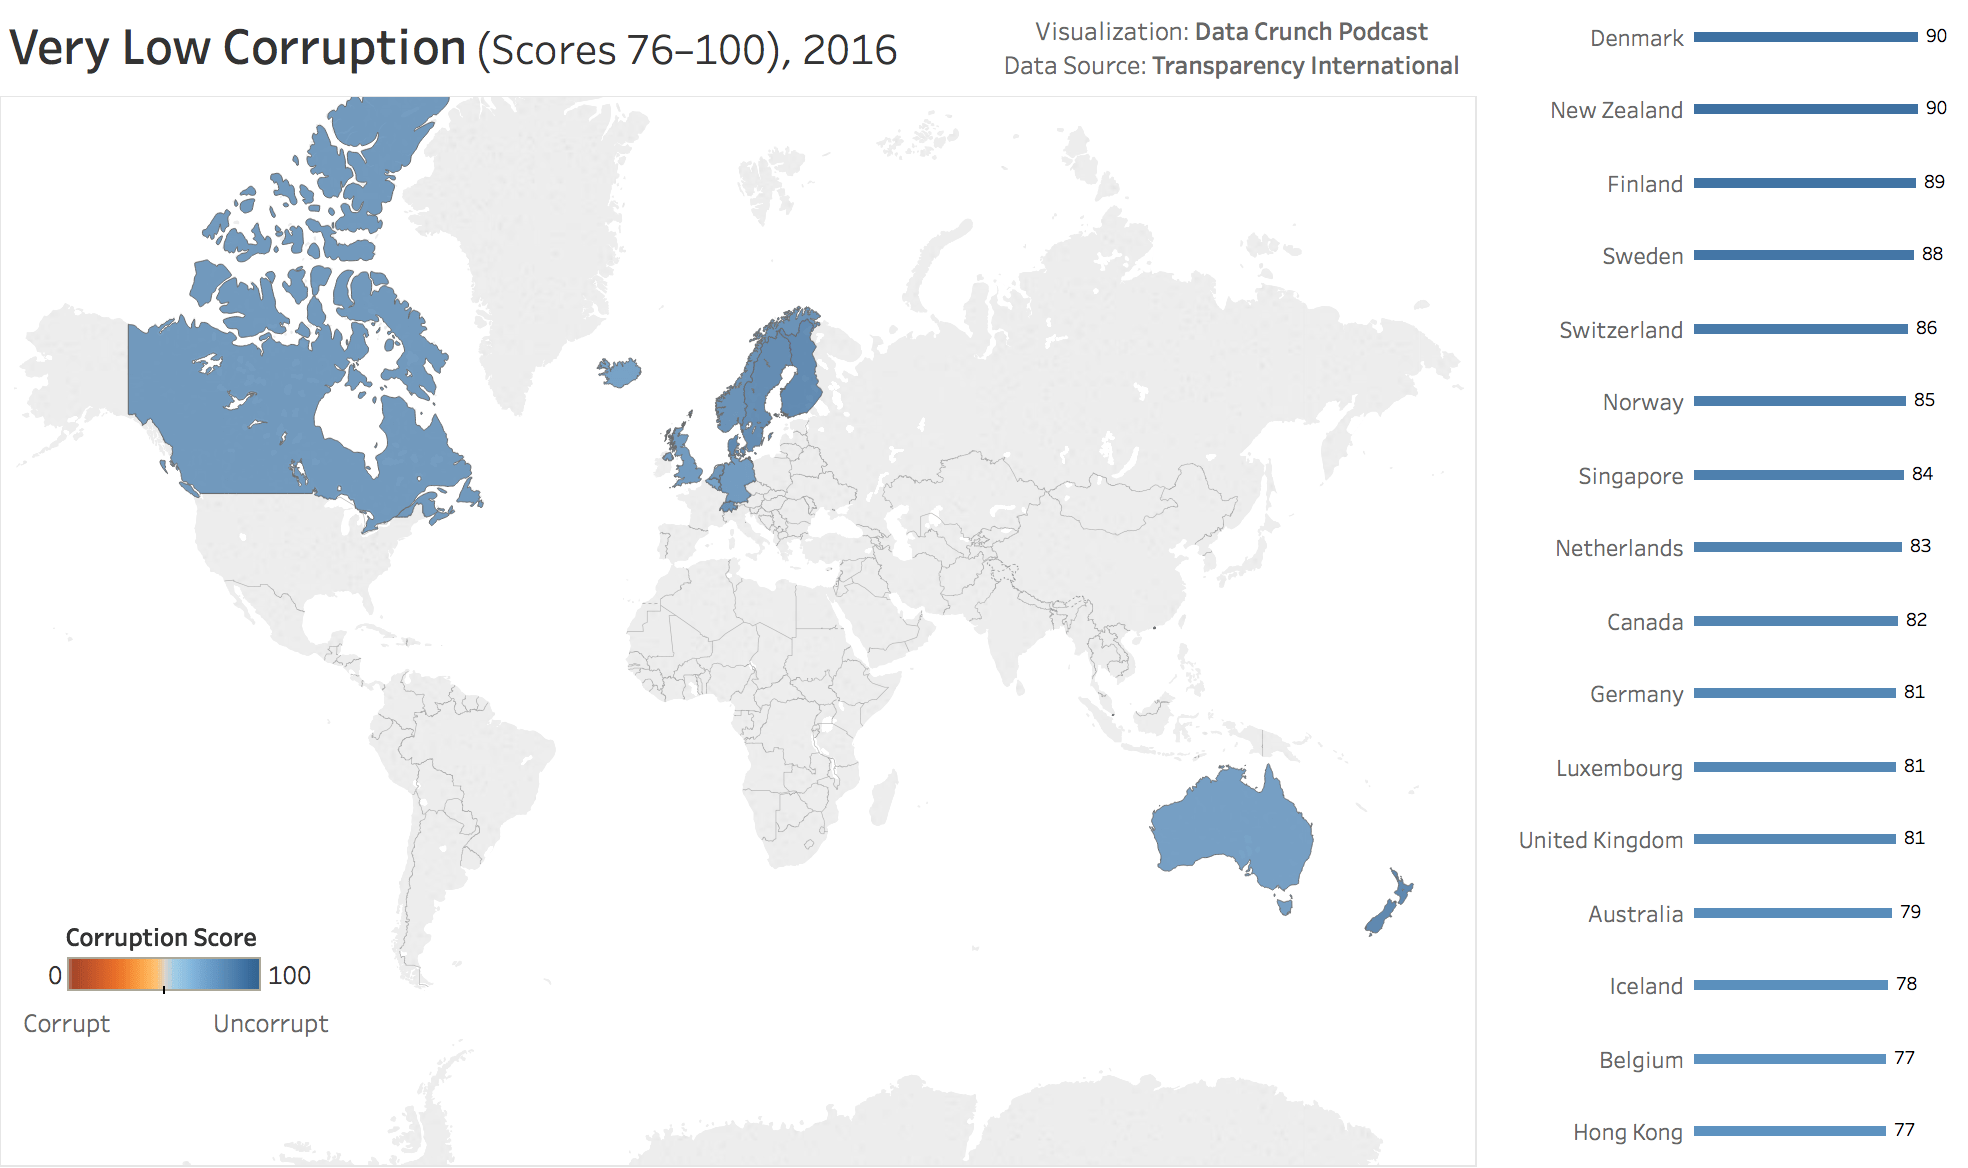 Very Low Corruption Map